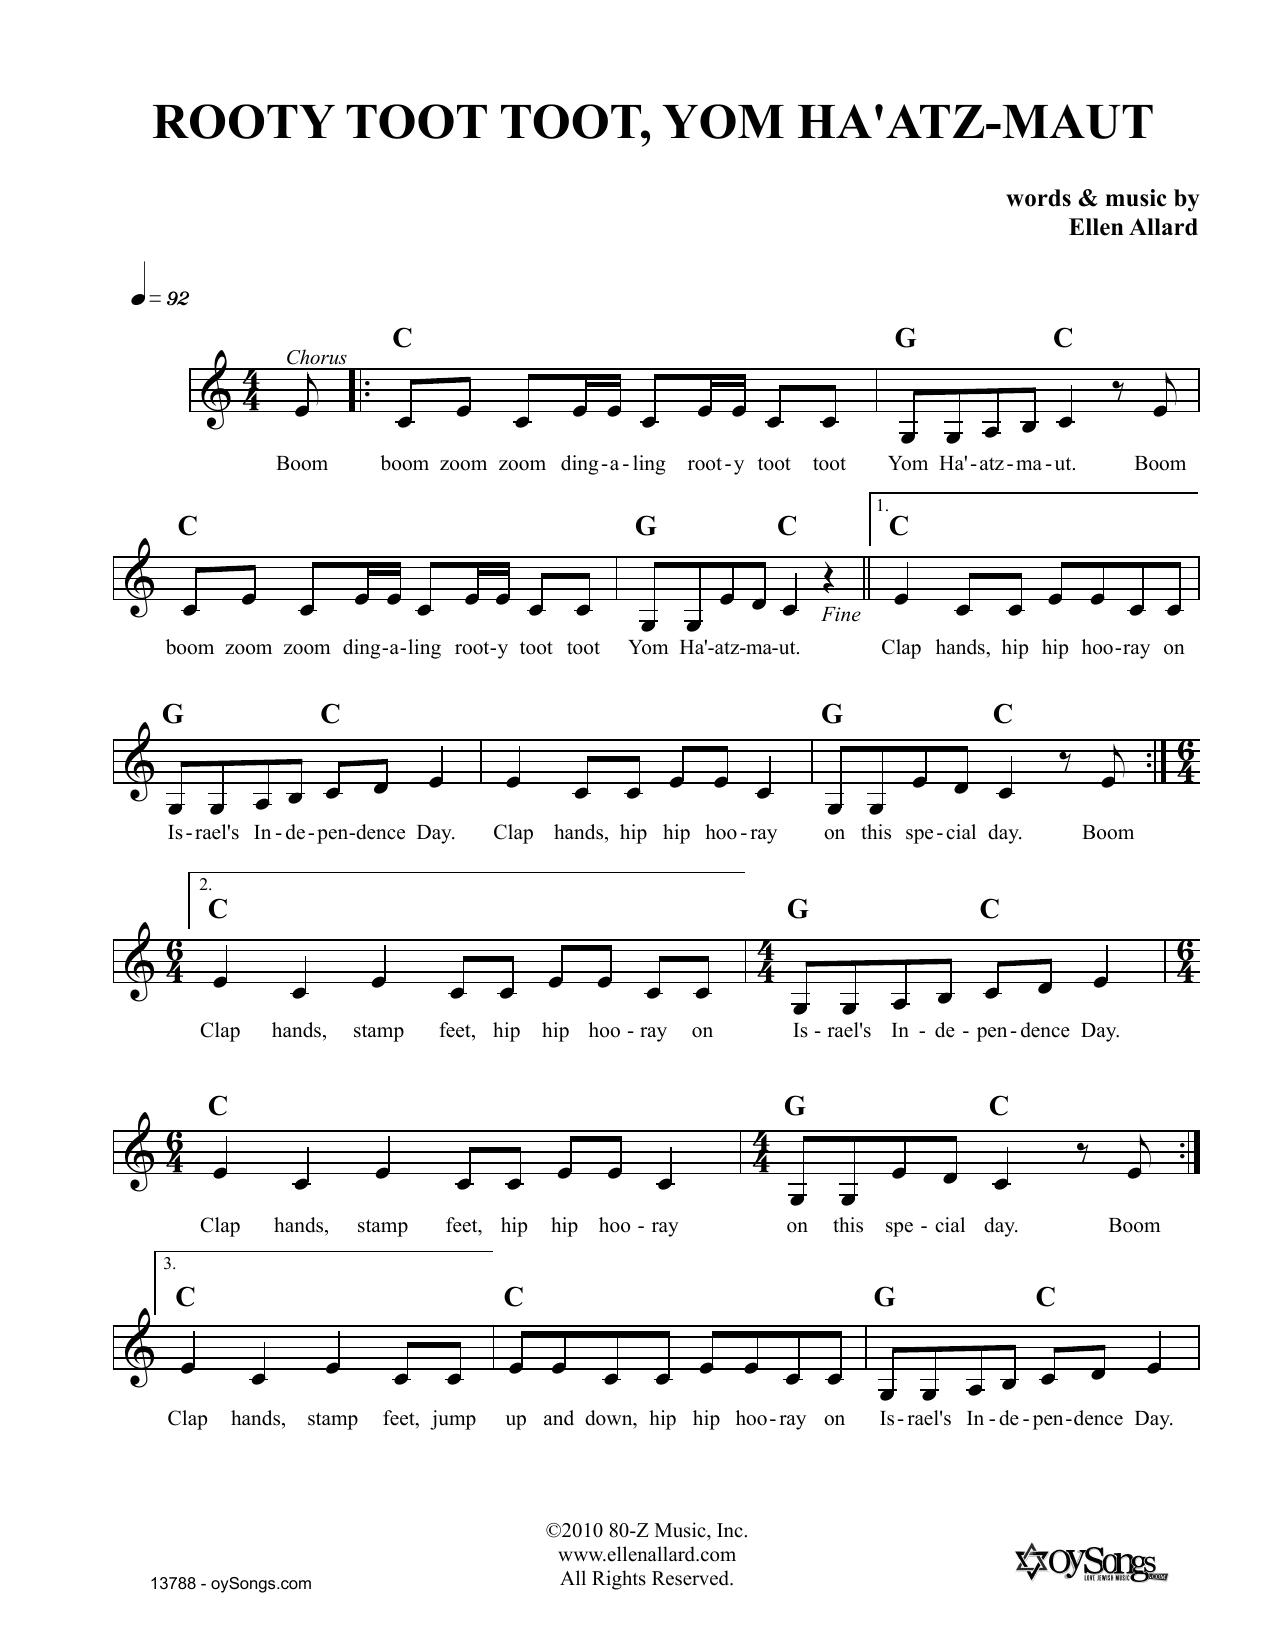 Ellen Allard Rooty Toot Toot Yom Haatzmaut sheet music notes and chords. Download Printable PDF.